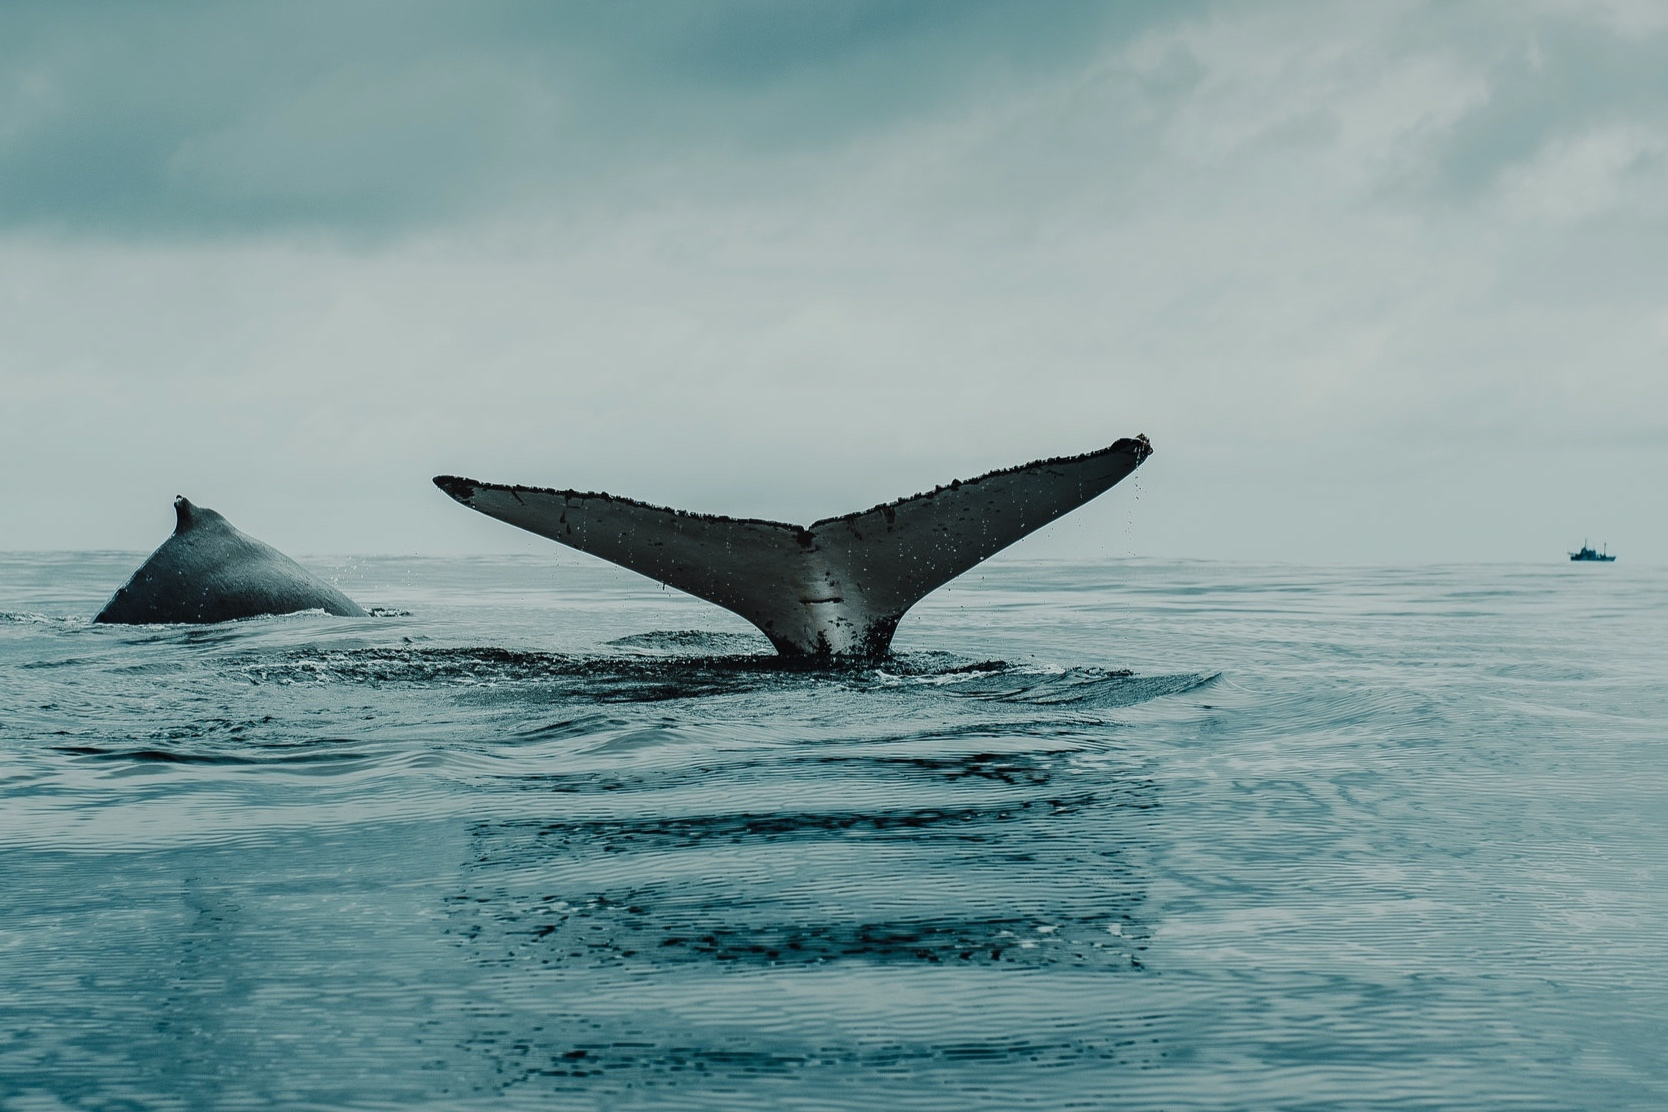 Whale Watching - From the shore or boat tours, whale watching is here!